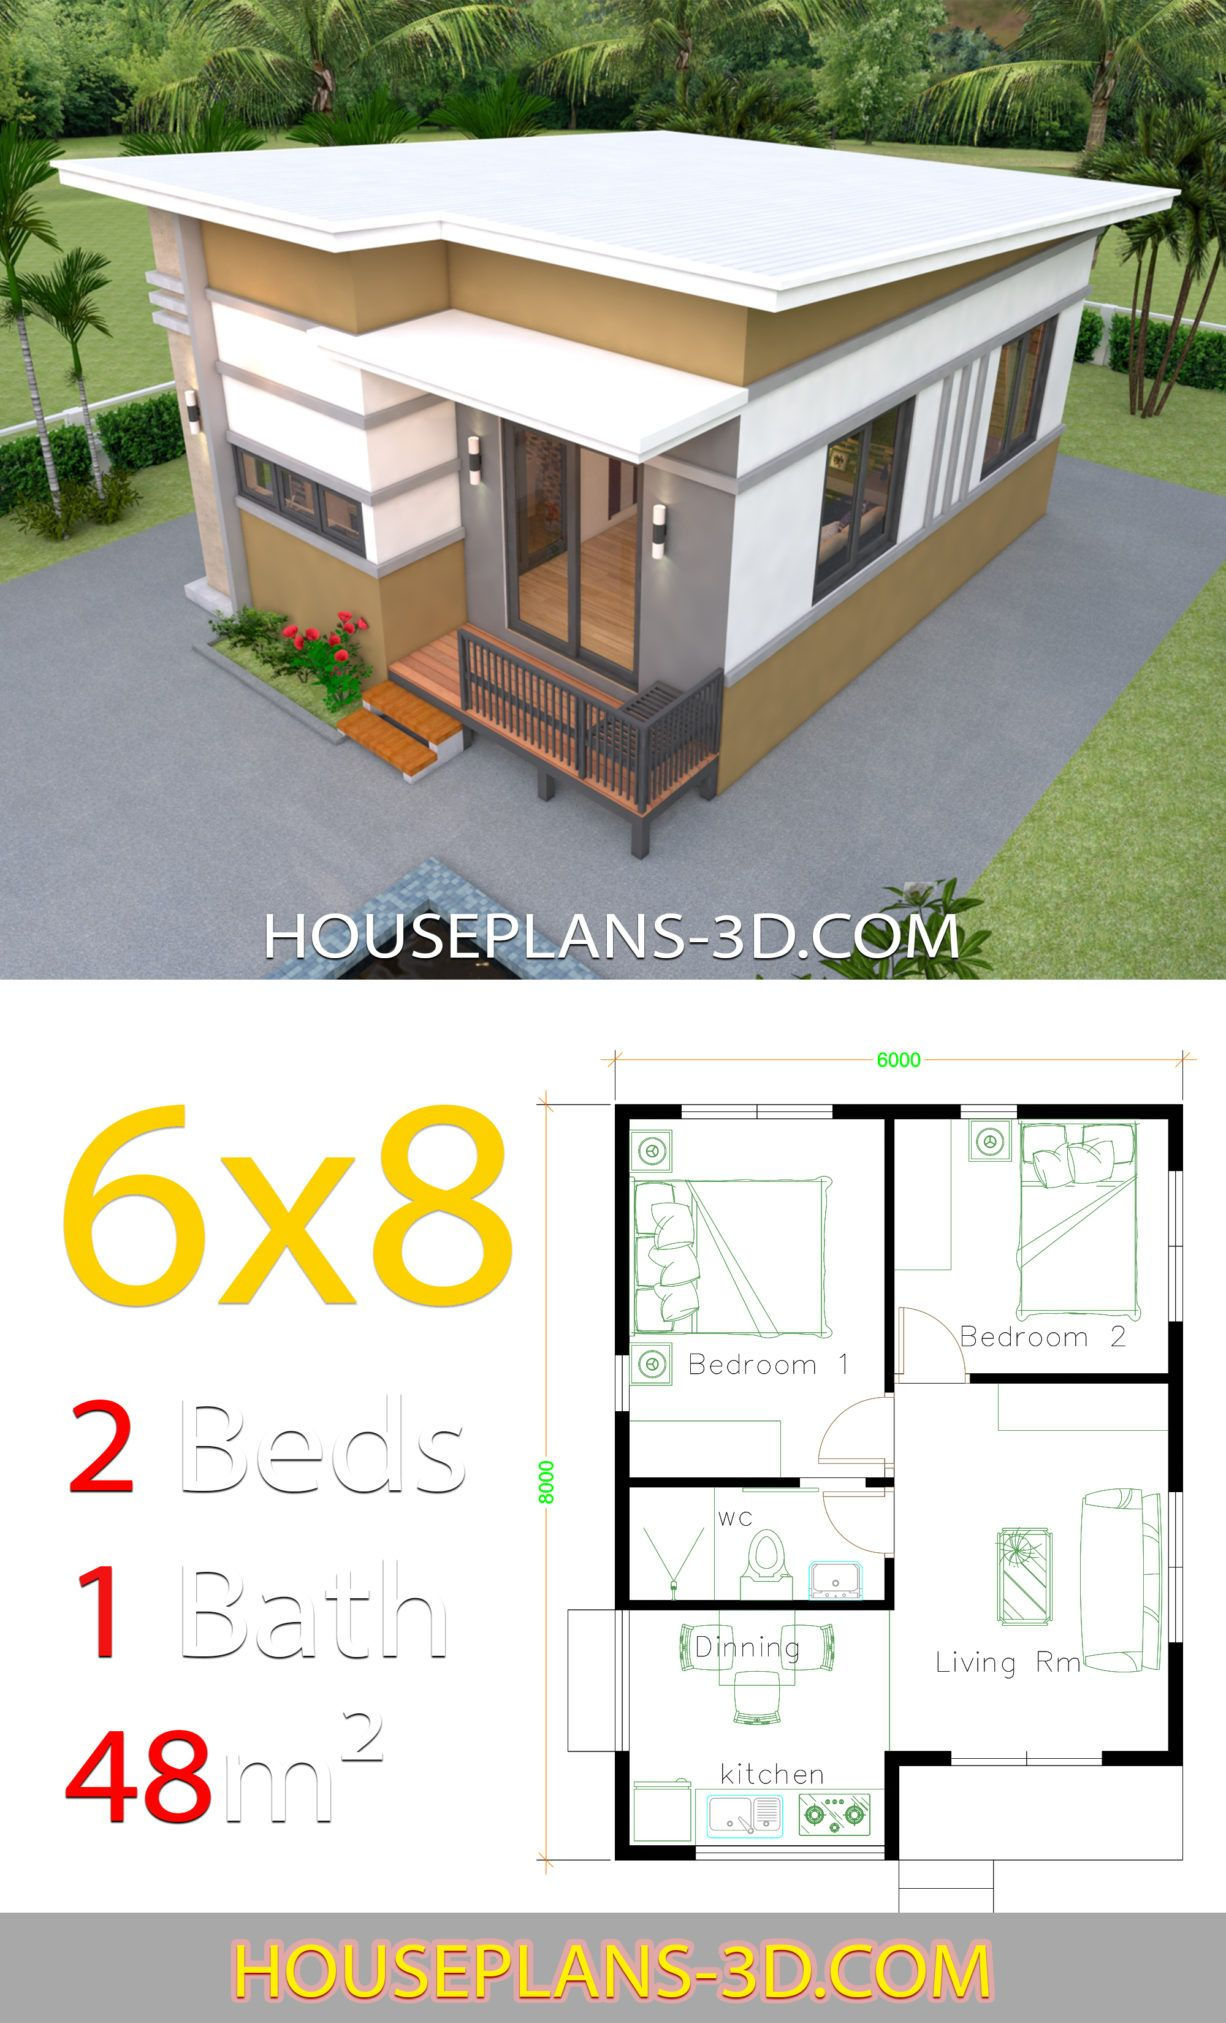 Small House Design Plans 6x8 With 2 Bedrooms House Plans 3d Small House Design Small House Design Plans Simple House Design